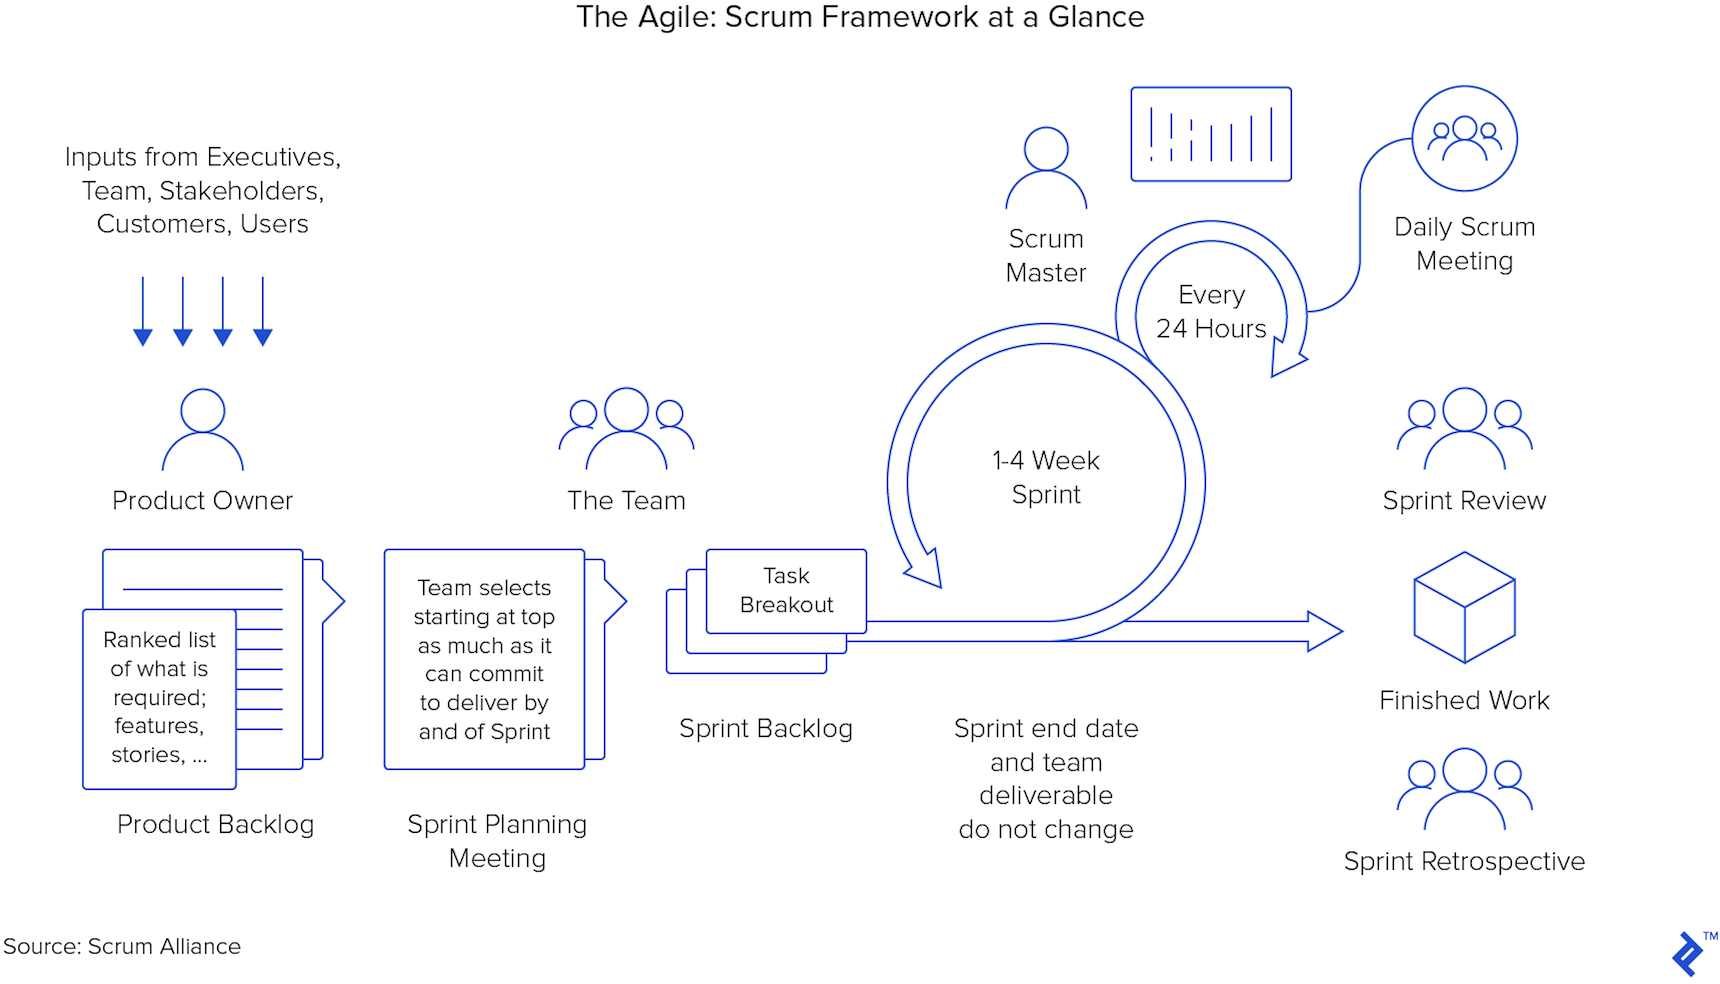 Diagram of the Scrum framework at a glance.